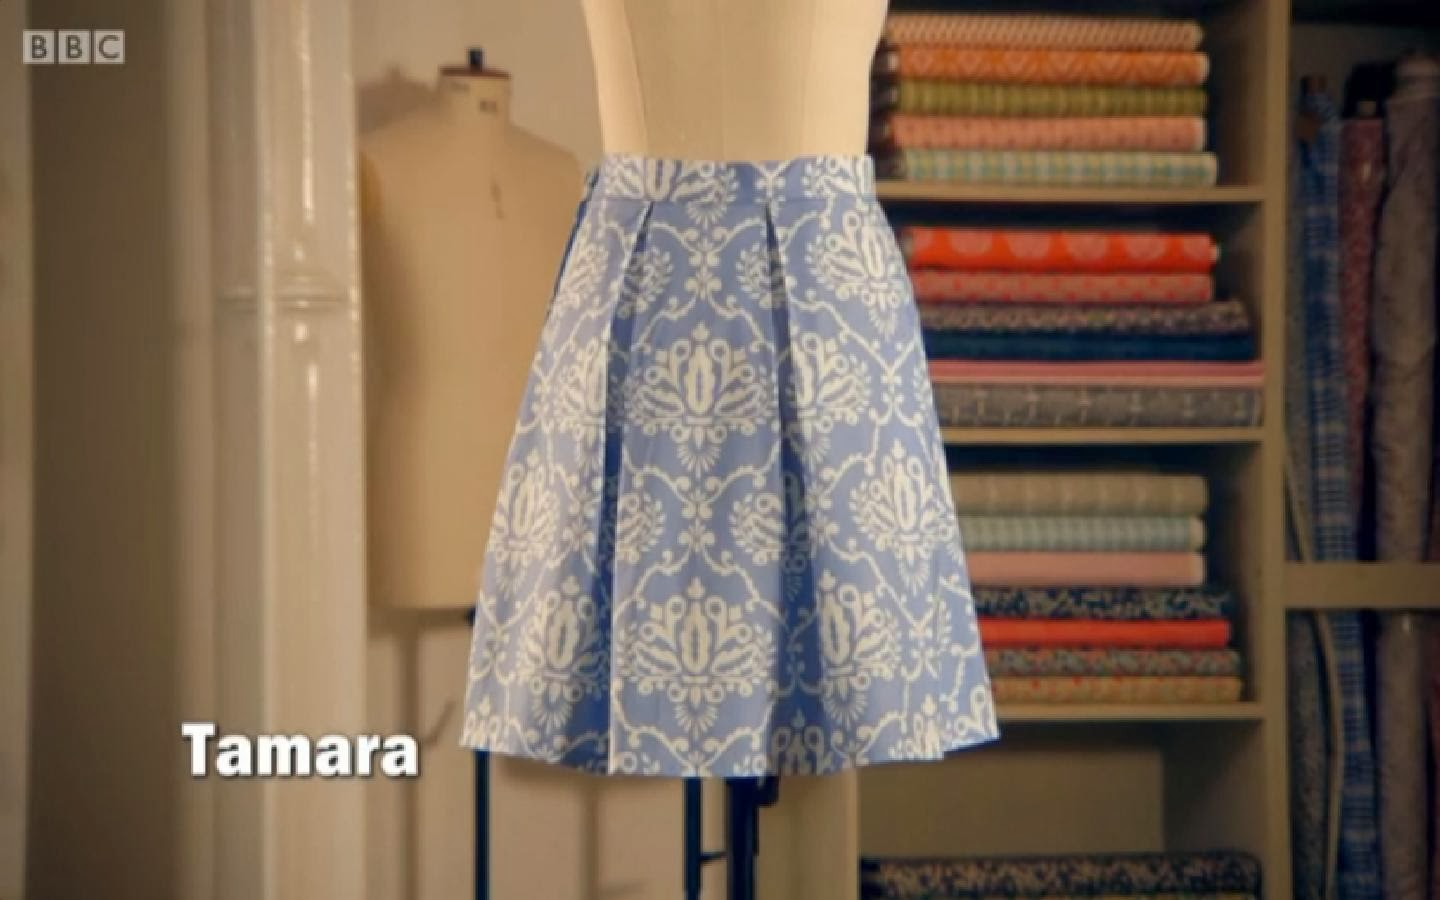 A-Line Skirt hack: Make a Pleated Skirt!